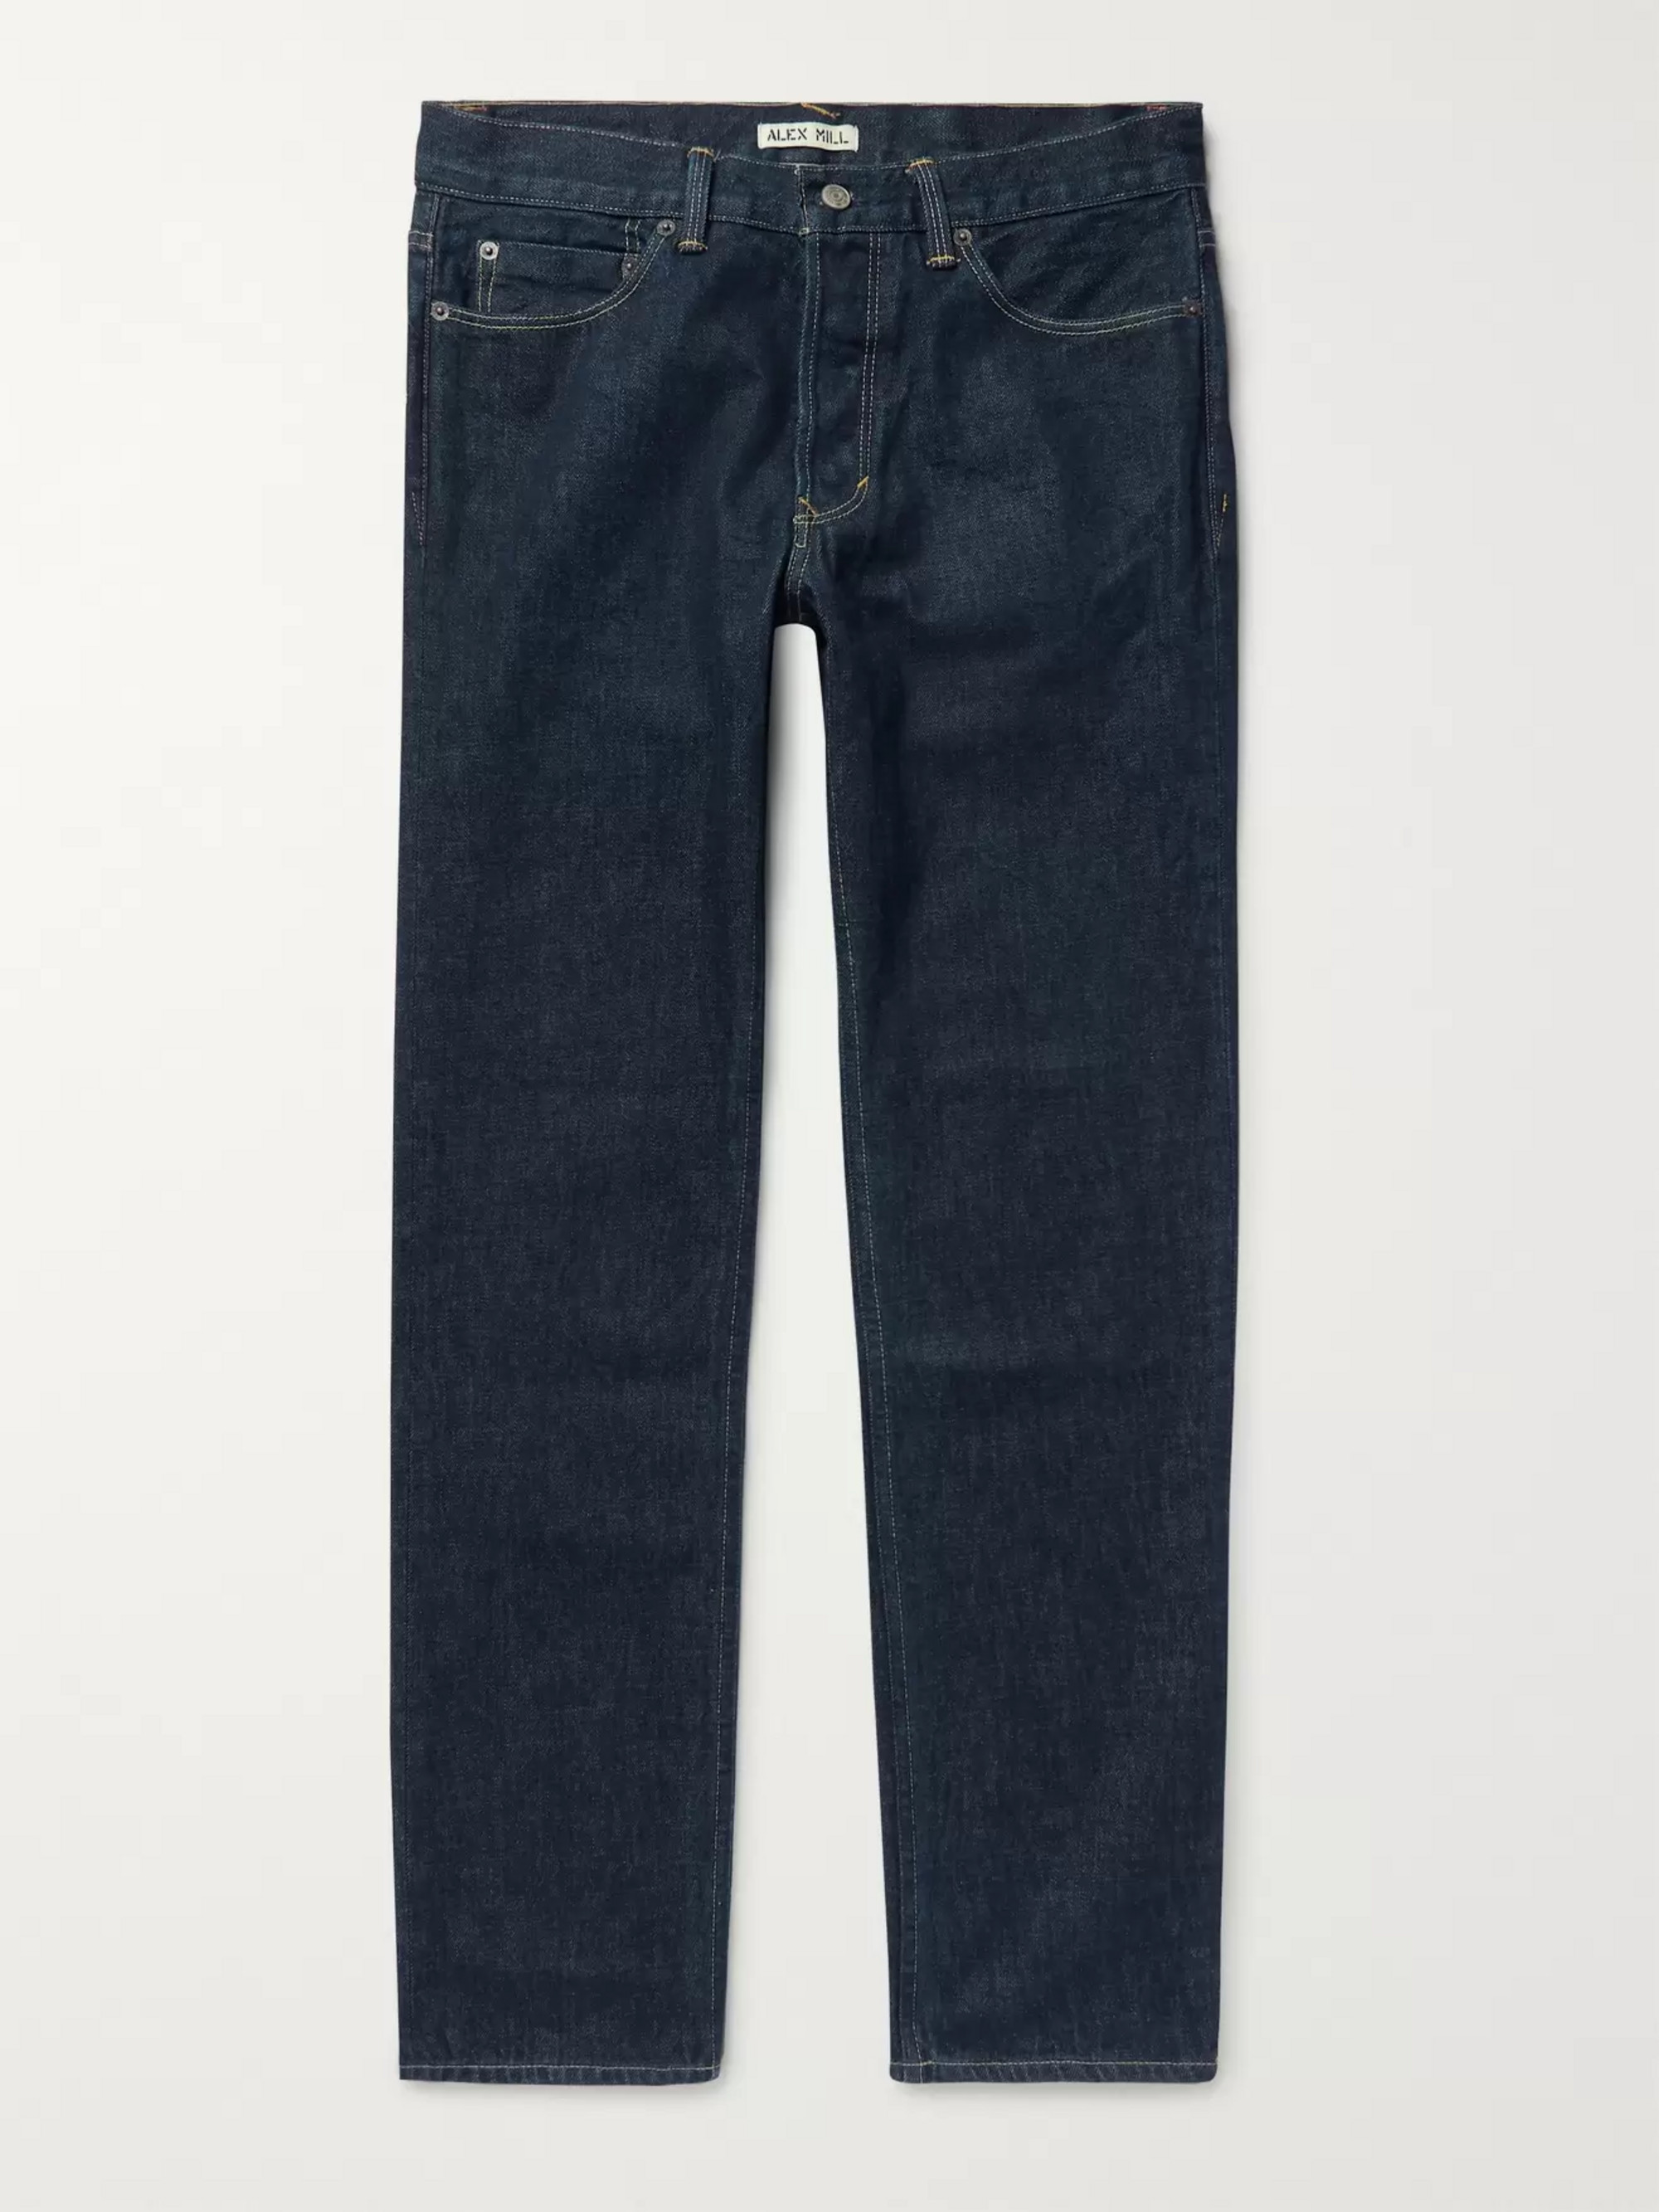 Alex Mill Denim Jeans